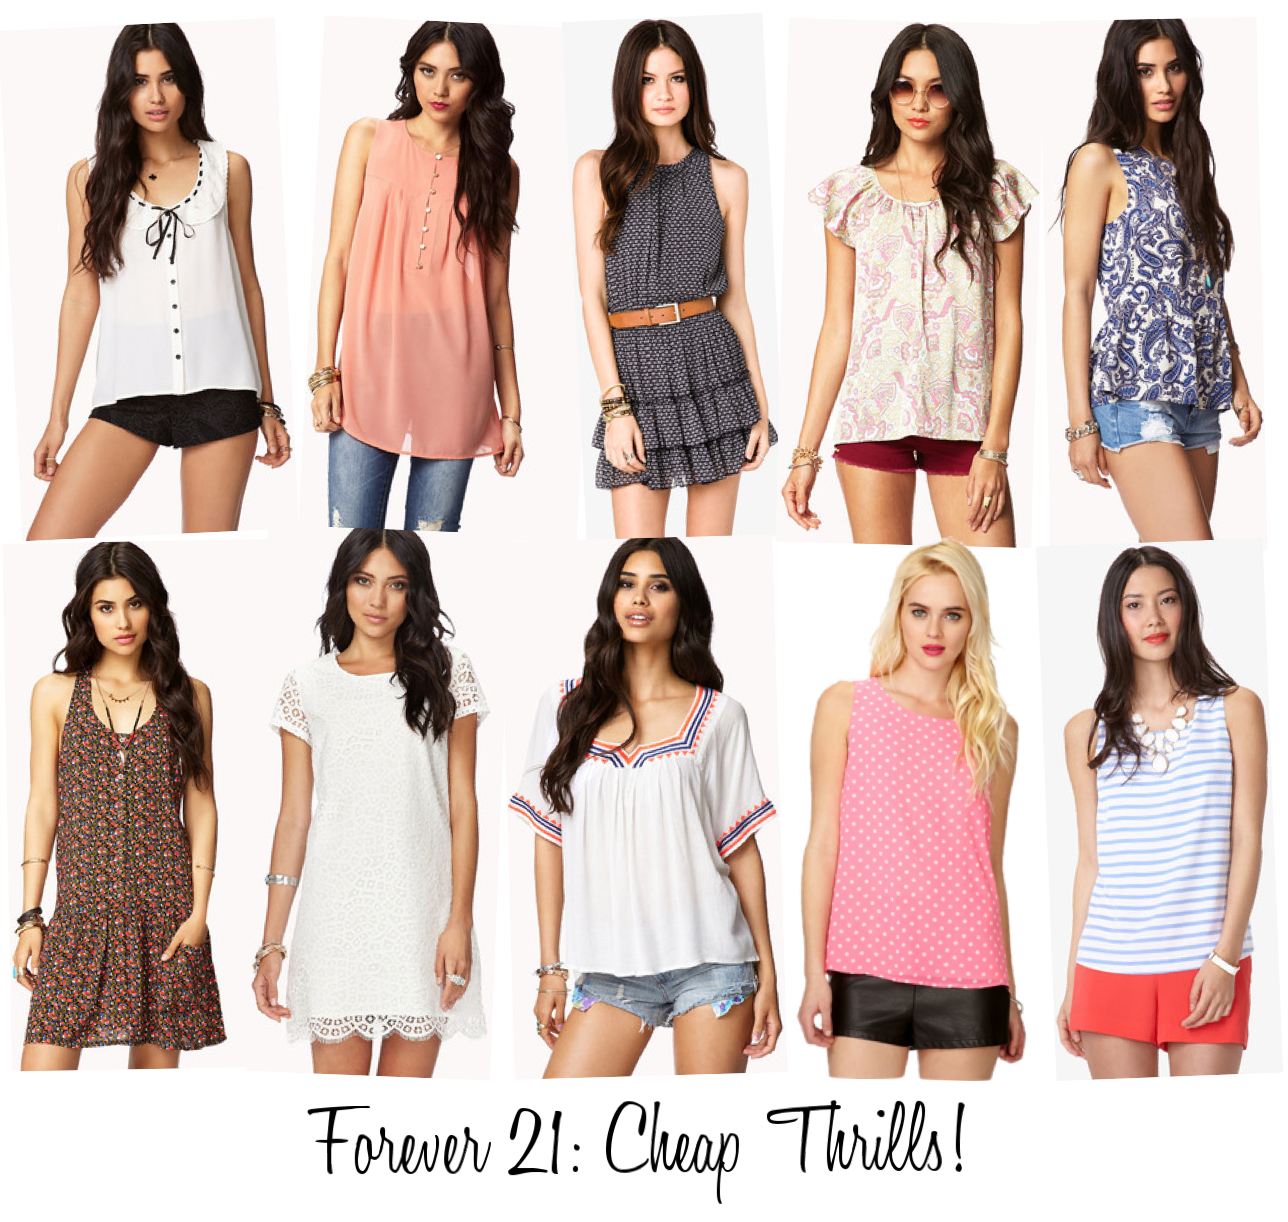 forever 21 clothes - Google Search | Fashion Board ...